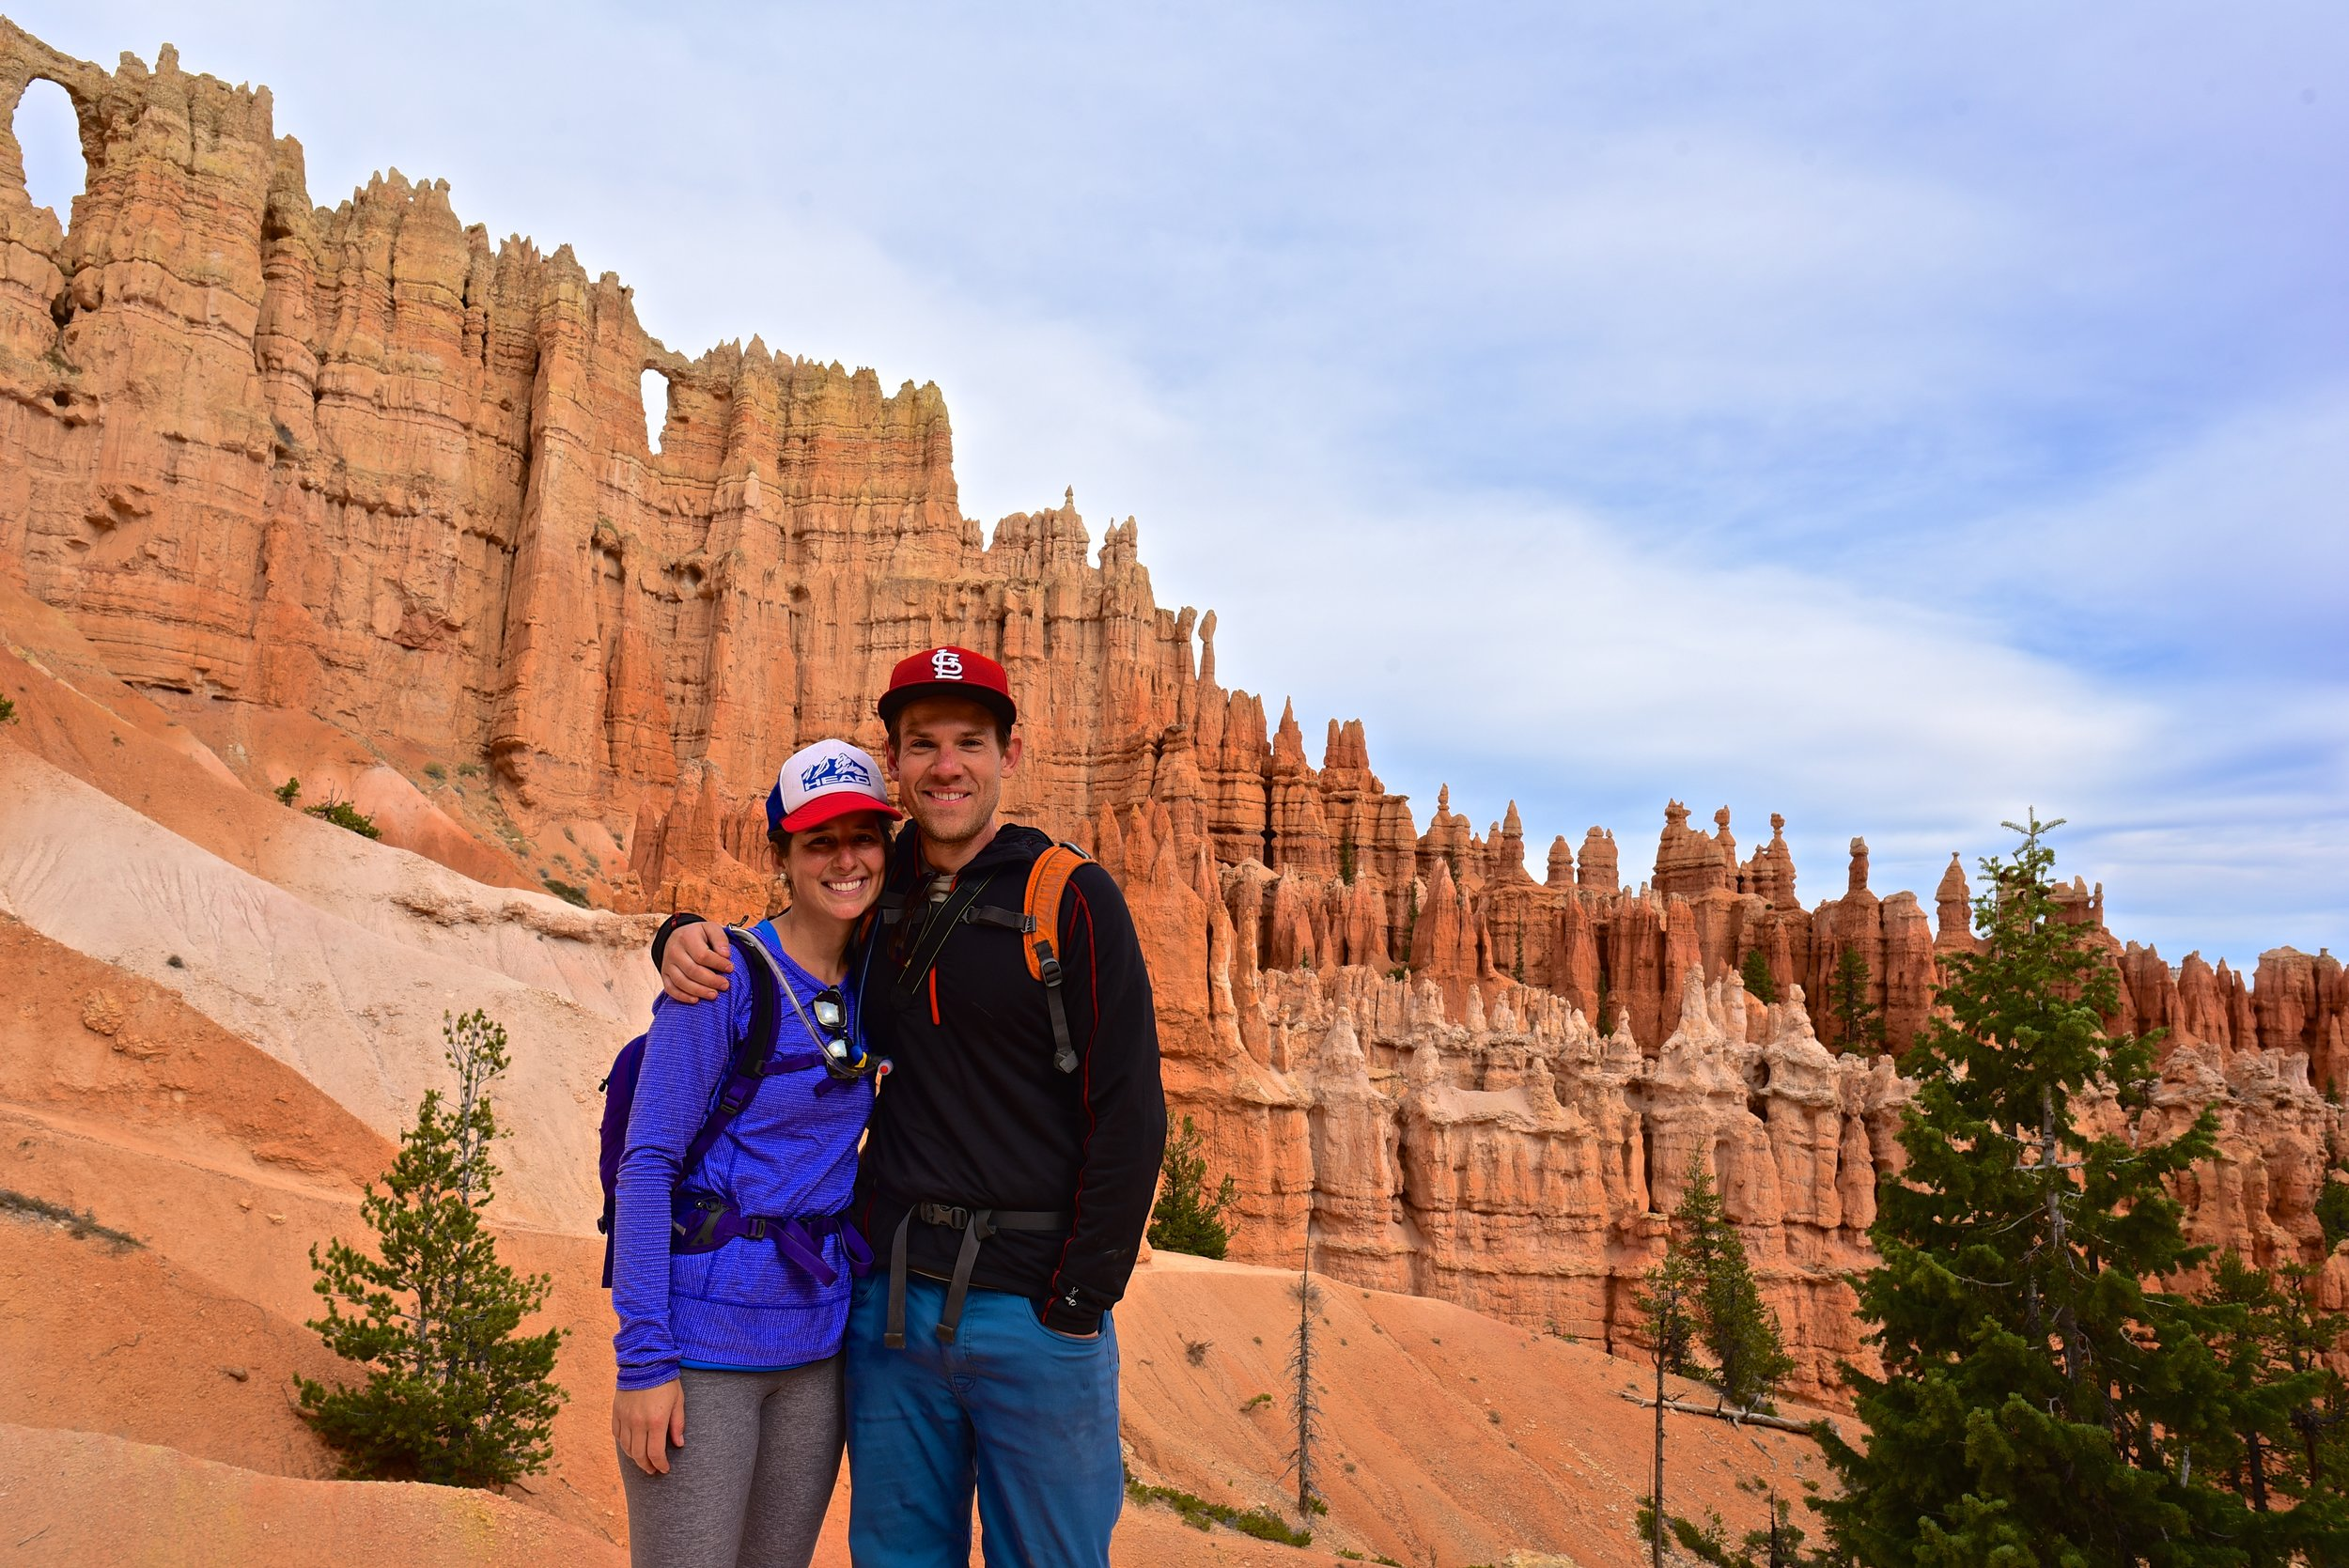 Standing in front of the Wall of Windows in Bryce Canyon